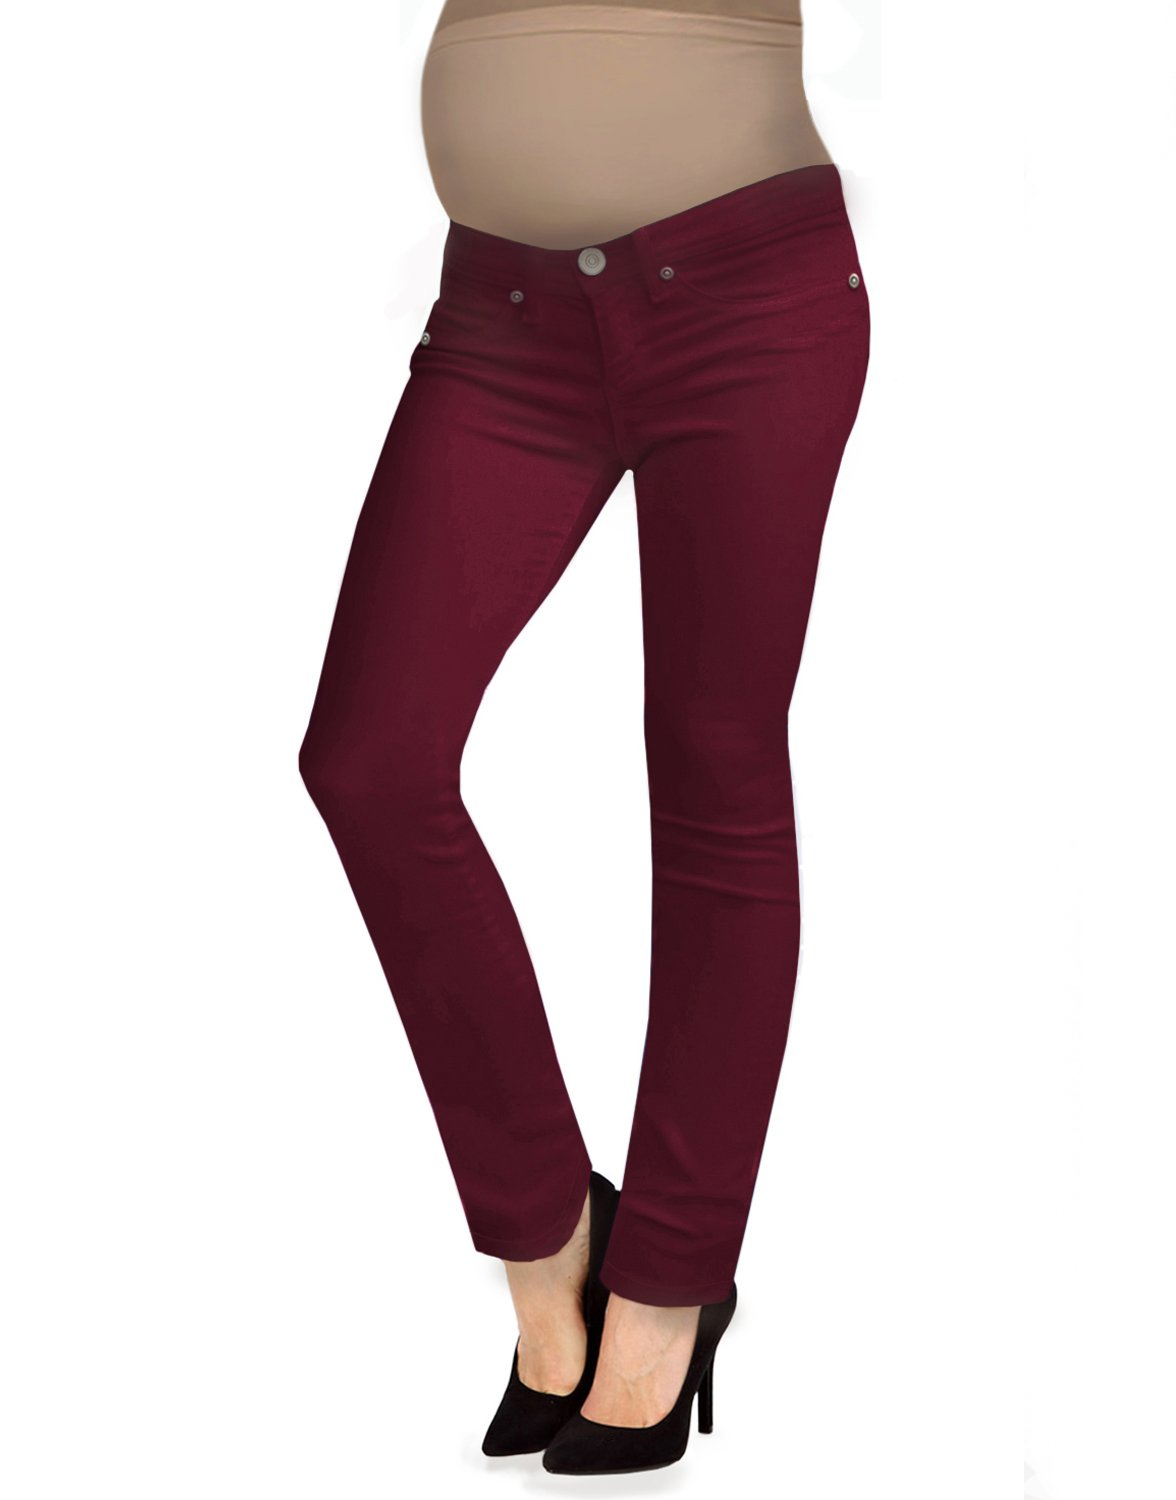 HyBrid & Company Super Comfy Stretch Women's Maternity Bootcut Jeans PM2835CDS Maroon Large